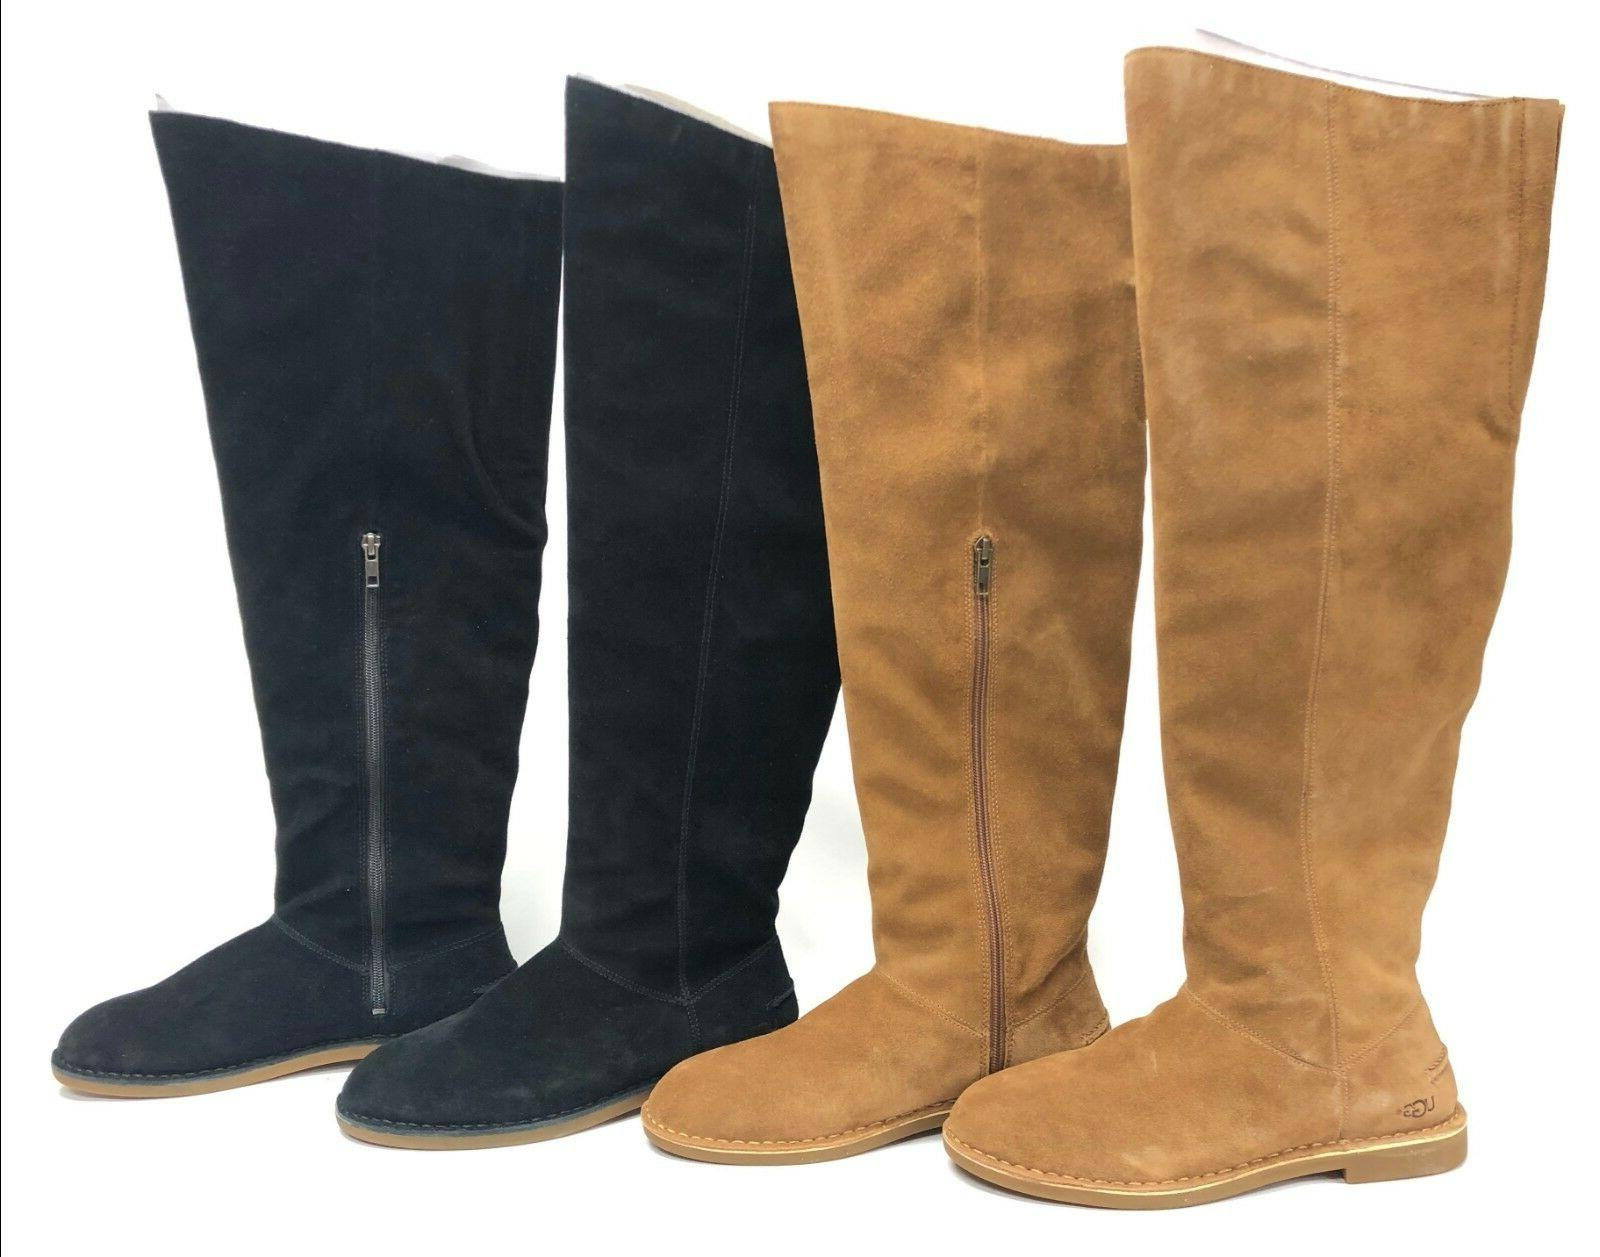 Ugg Australia the Knee Boot Black or Chestnut 1095394 Tall Boots